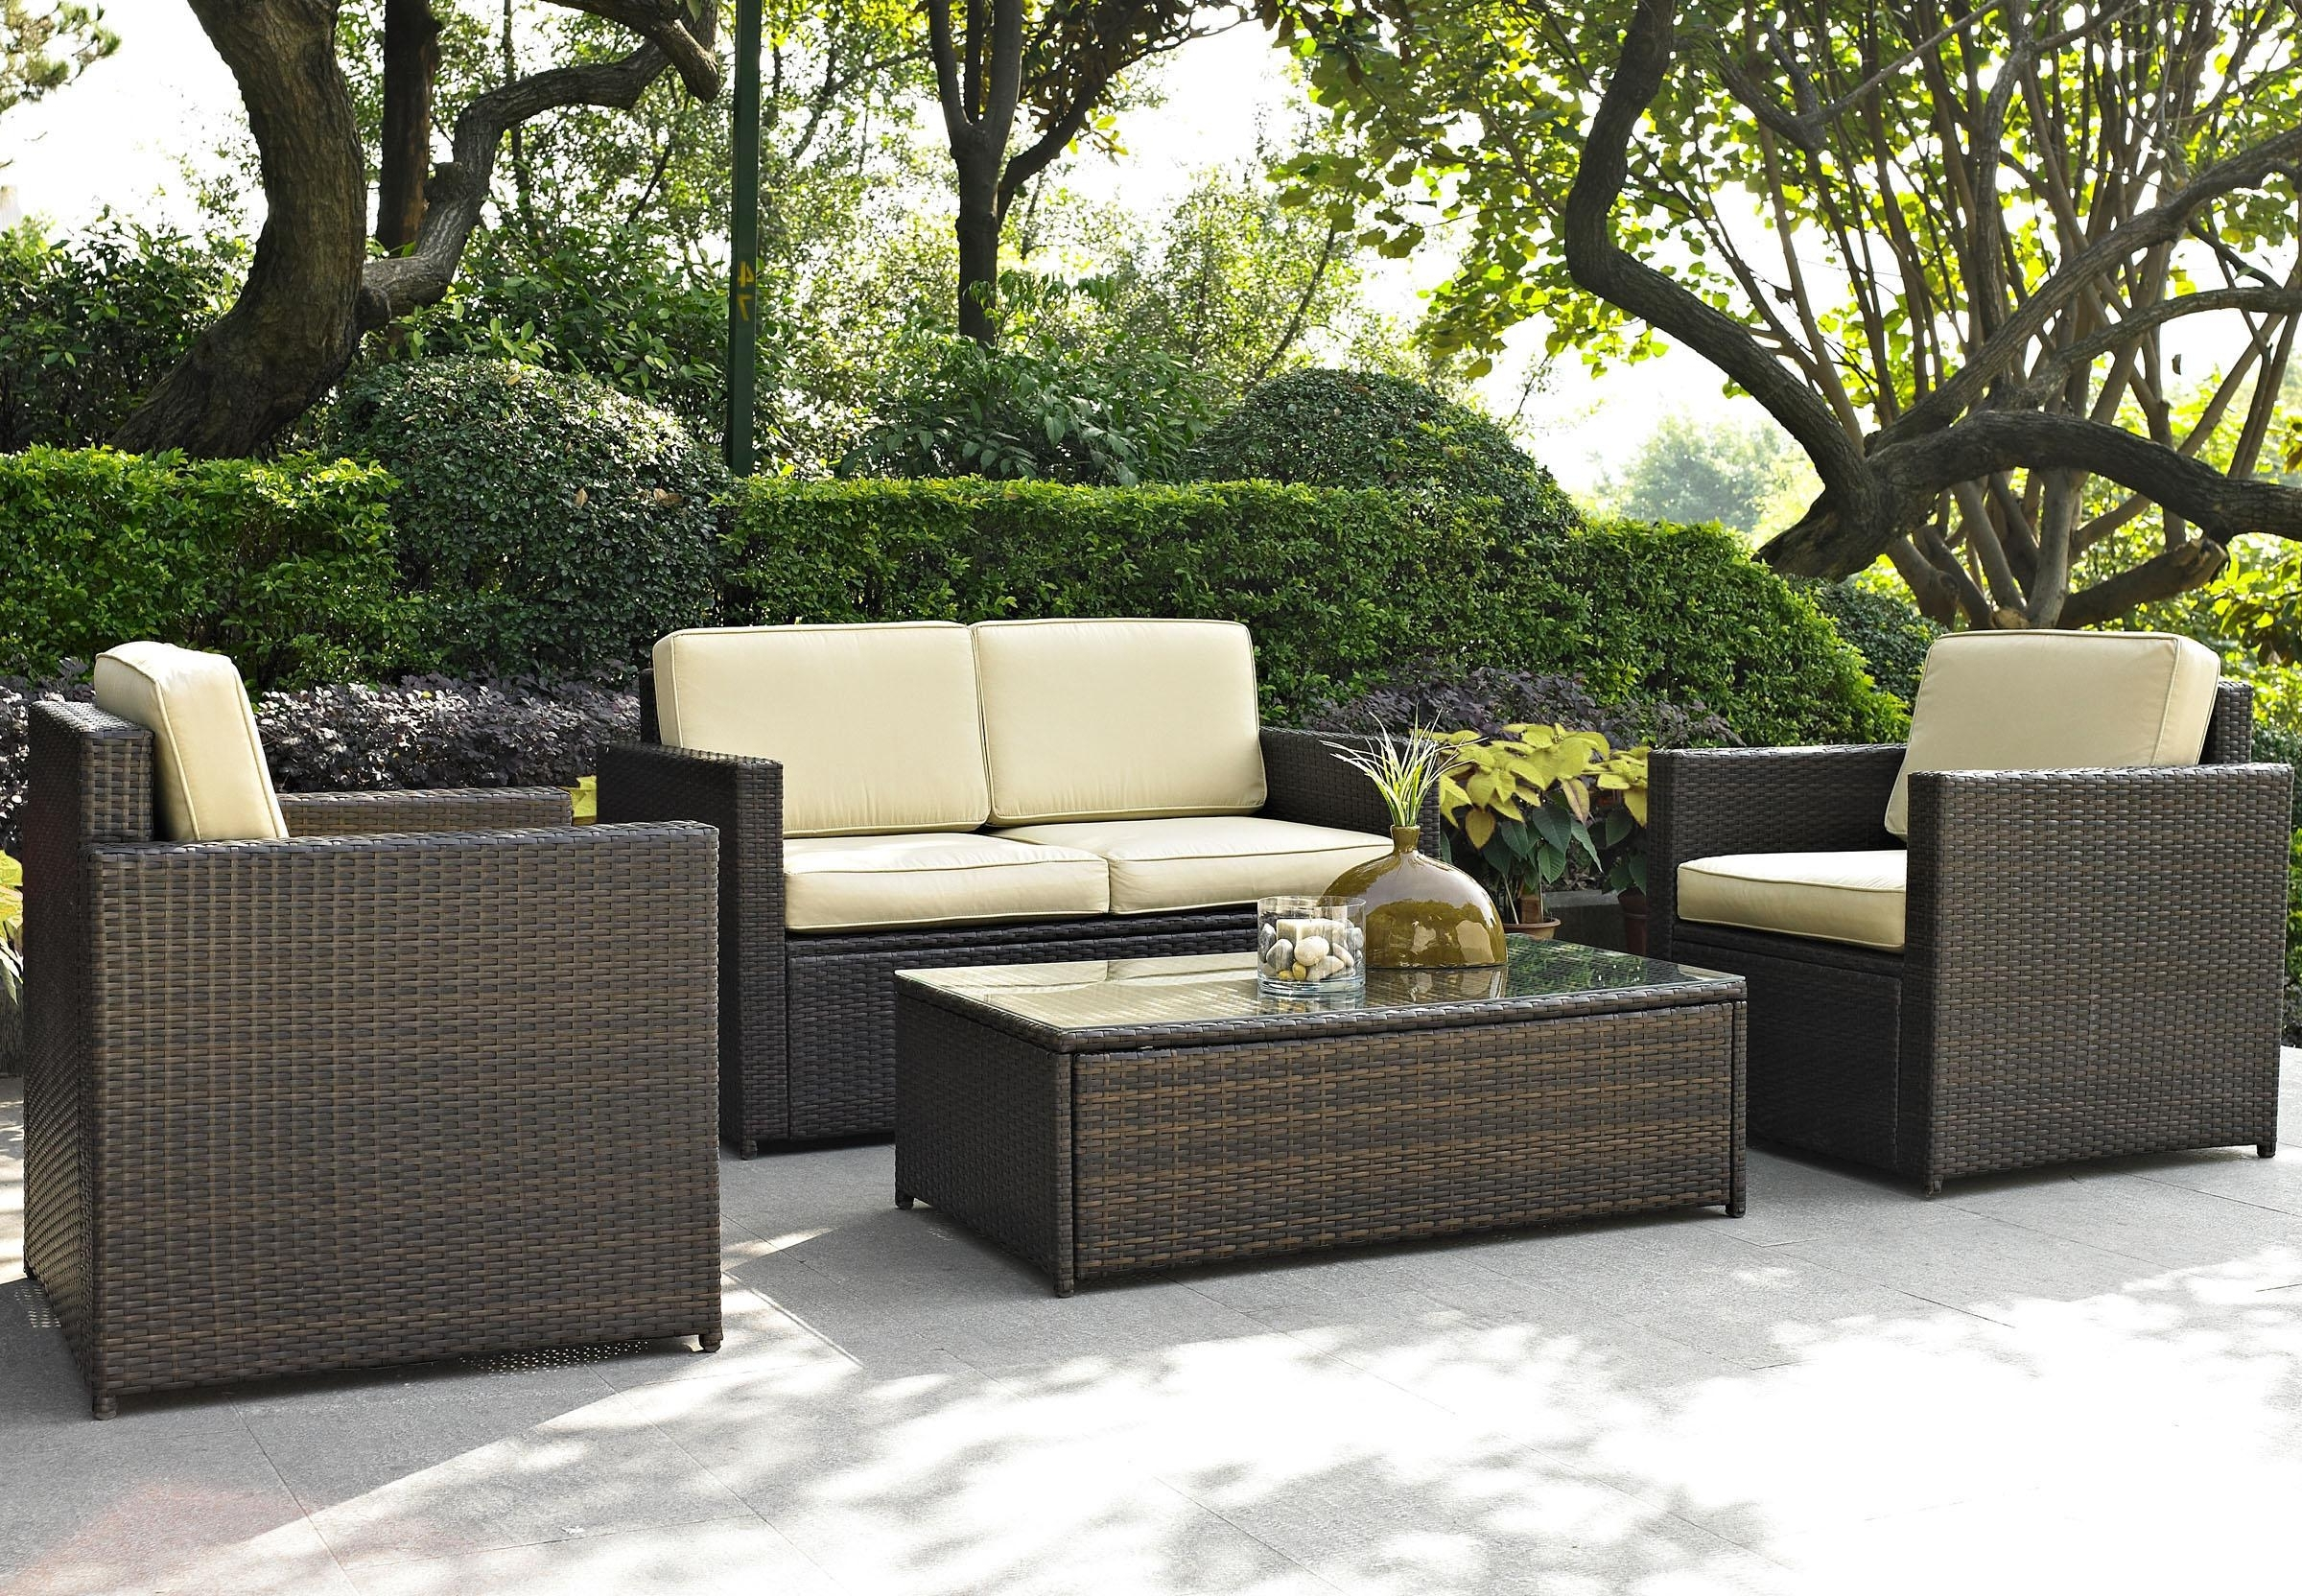 Garden & Patio Furniture : Patio Rocking Chairs Patio Gravity Chair In Well Known Patio Conversation Sets With Ottomans (Gallery 15 of 20)